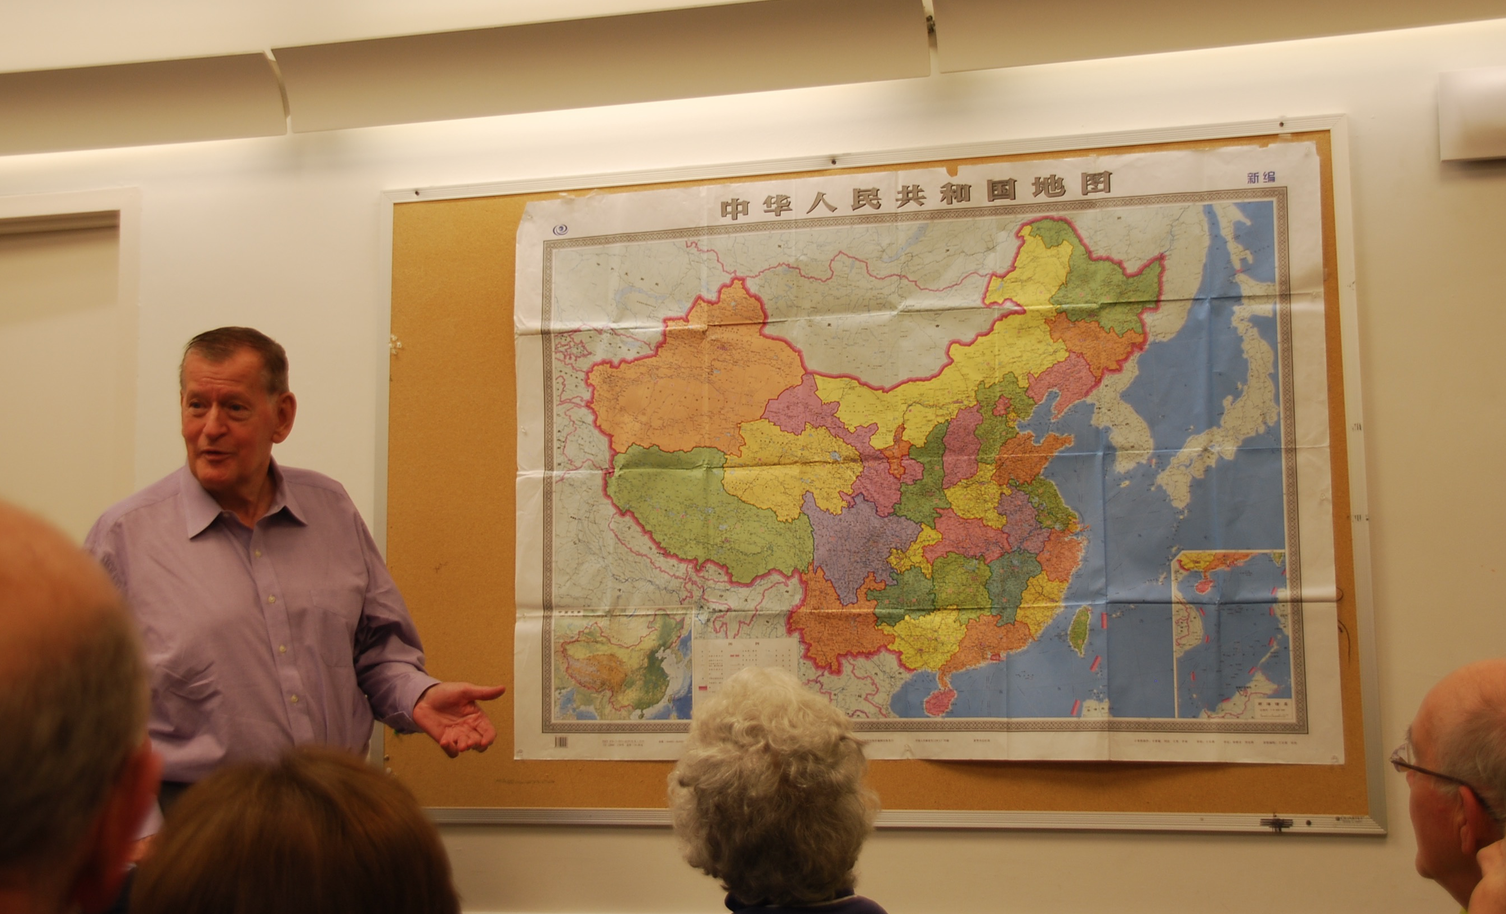 China expert and South End resident, Ross Terrill, hung up a map of China to explain why it feels surrounded by countries that are not its friends.